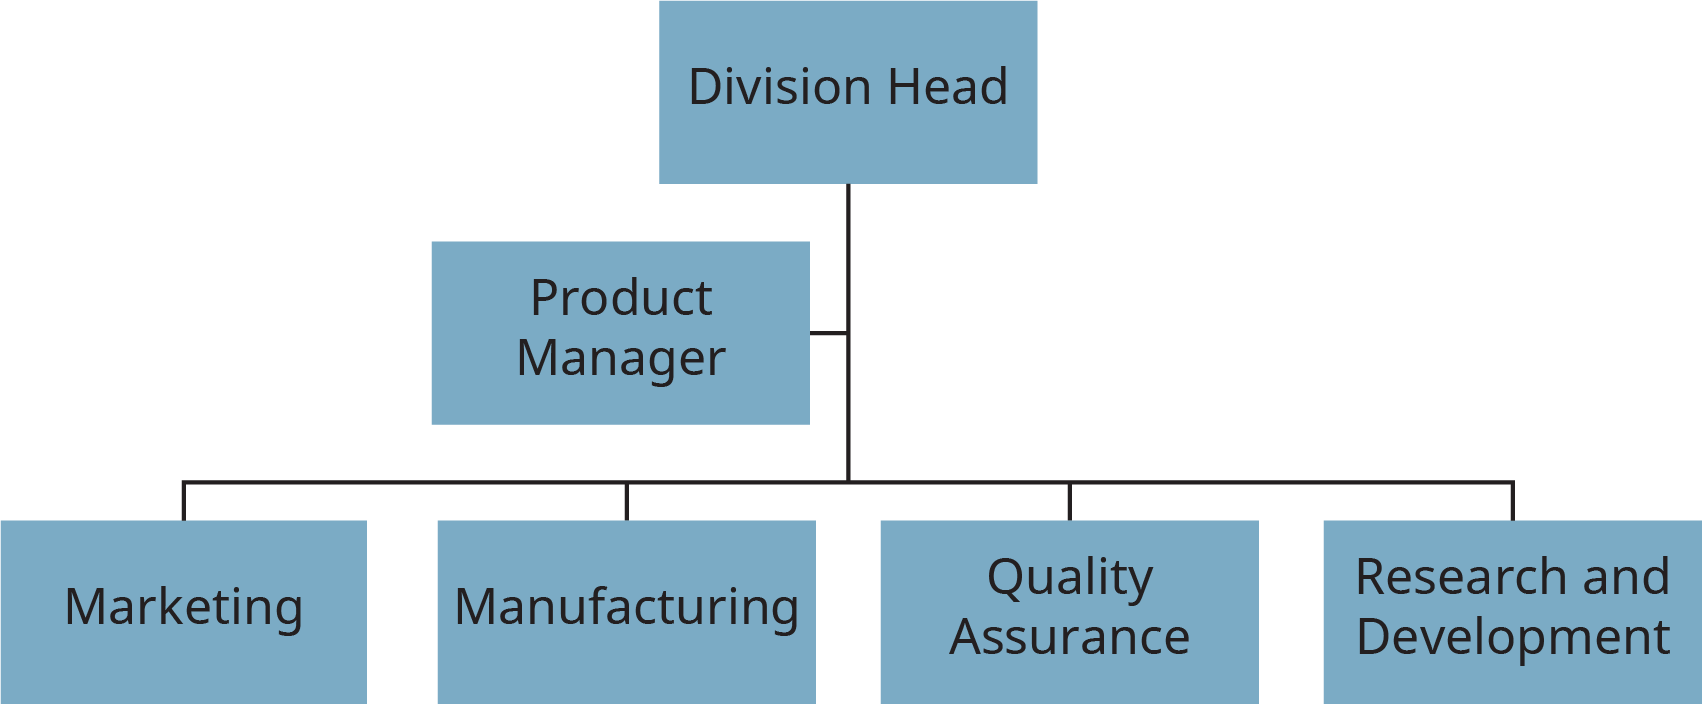 A flowchart shows the product manager acting as a linking manager.